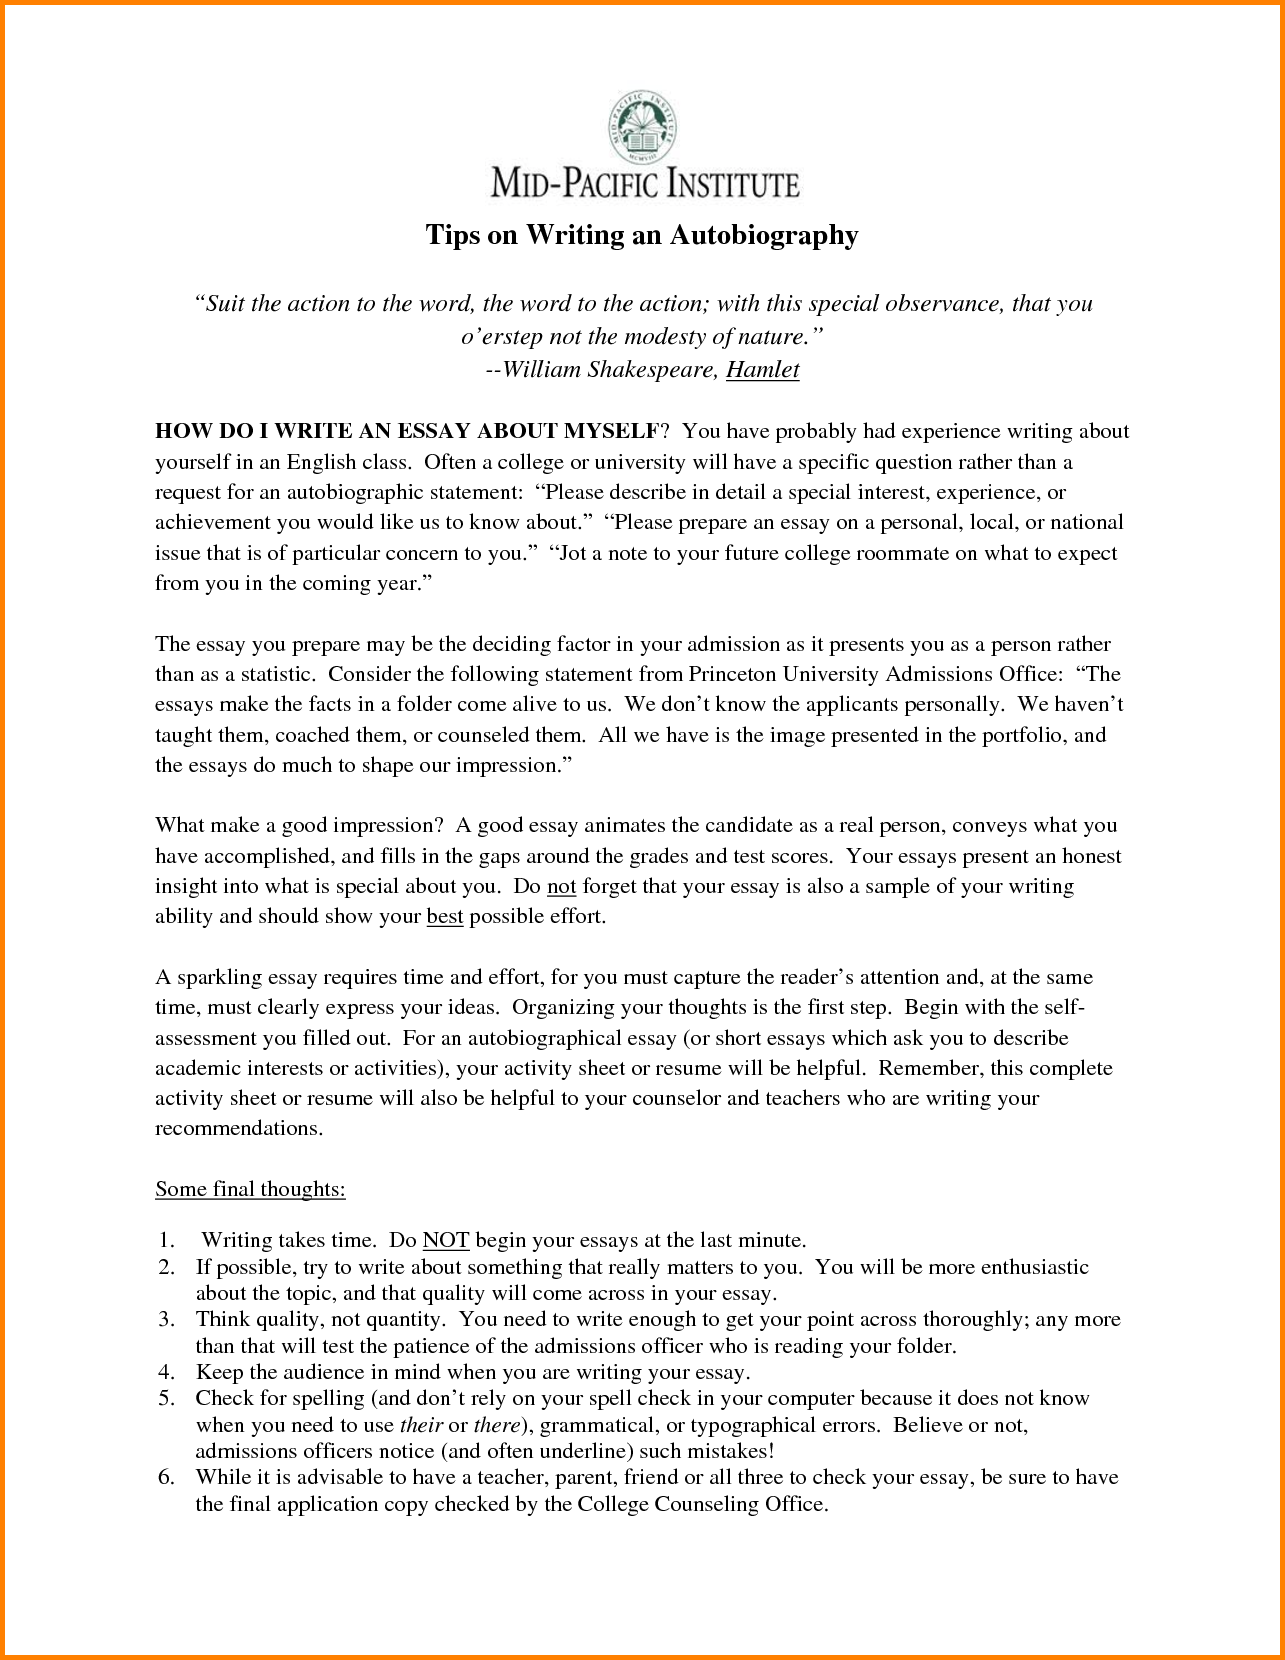 003 How To Start Good Essay College Application About Yourself Ways Essays L Awesome A Paper For Introduction Example Biography Full